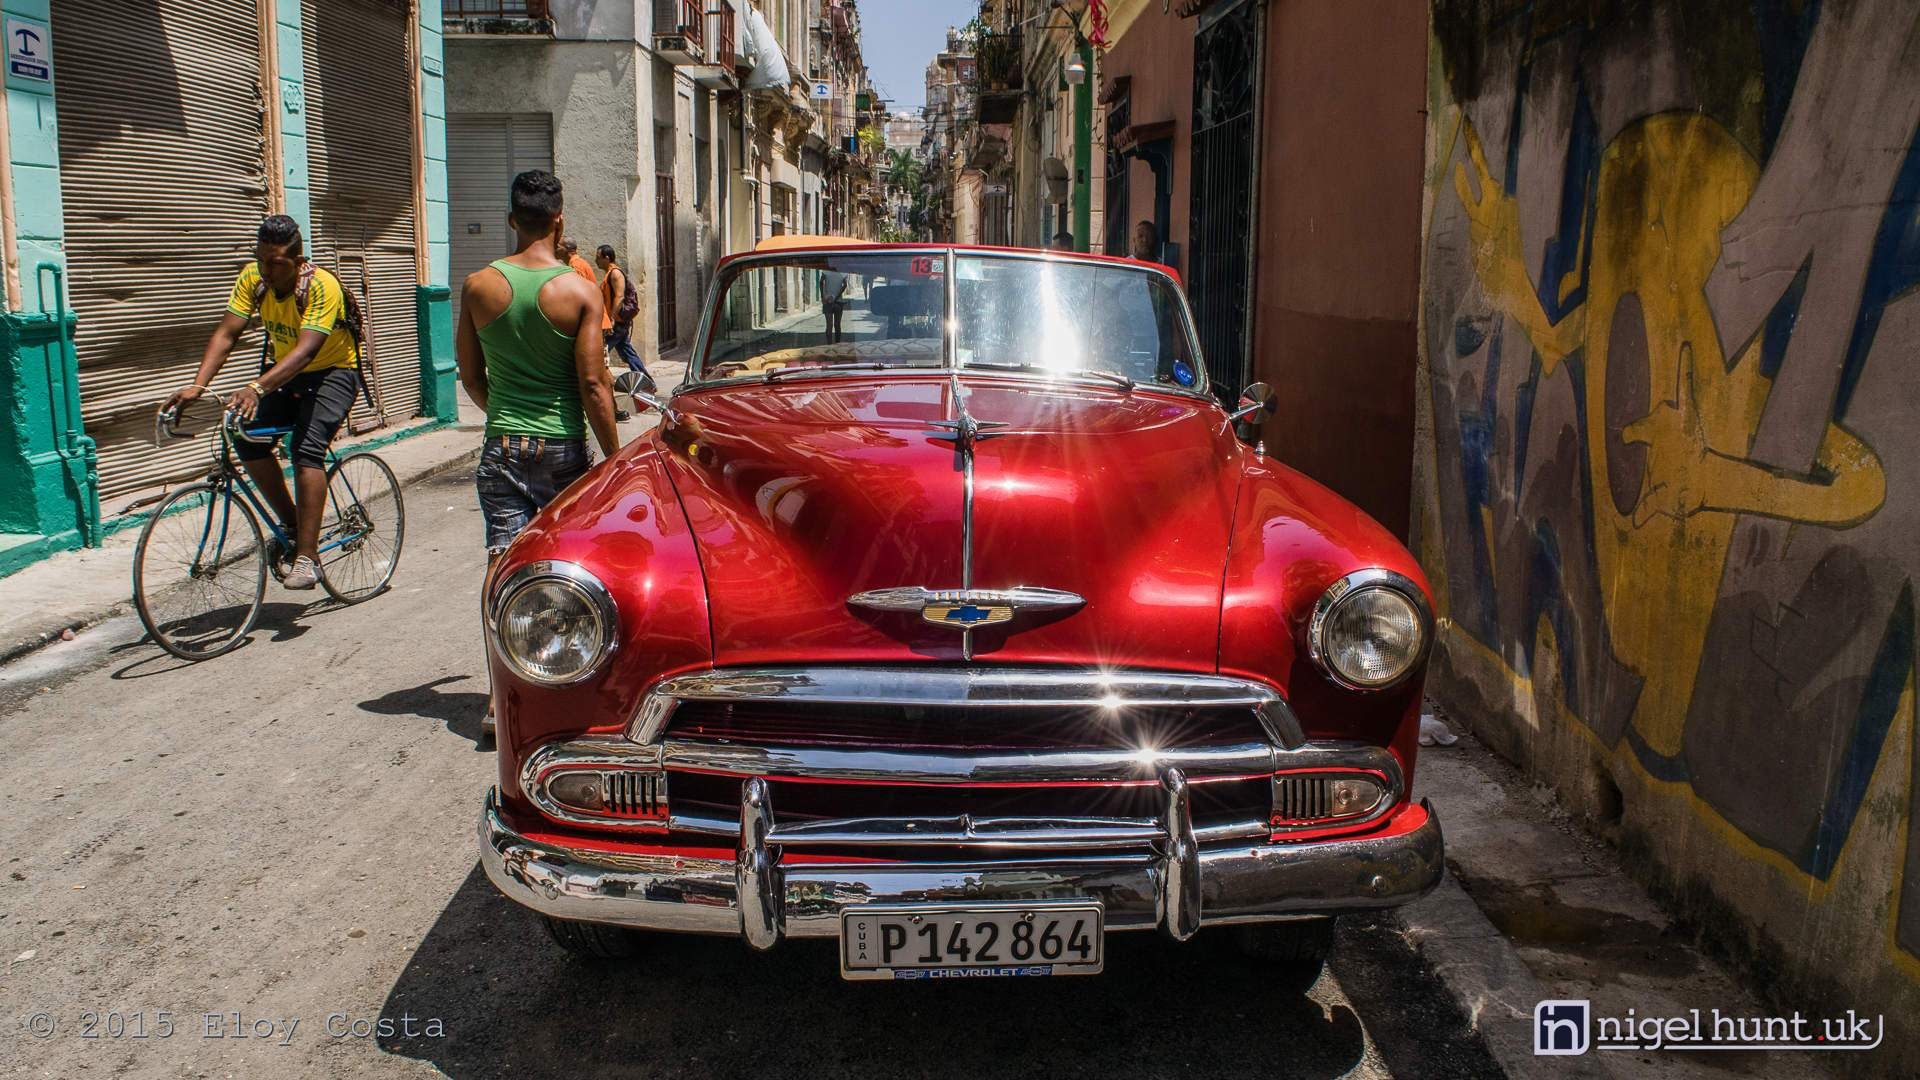 Cool 1951 convertible Chevrolet parked next to a street mural in Old Havana, Cuba